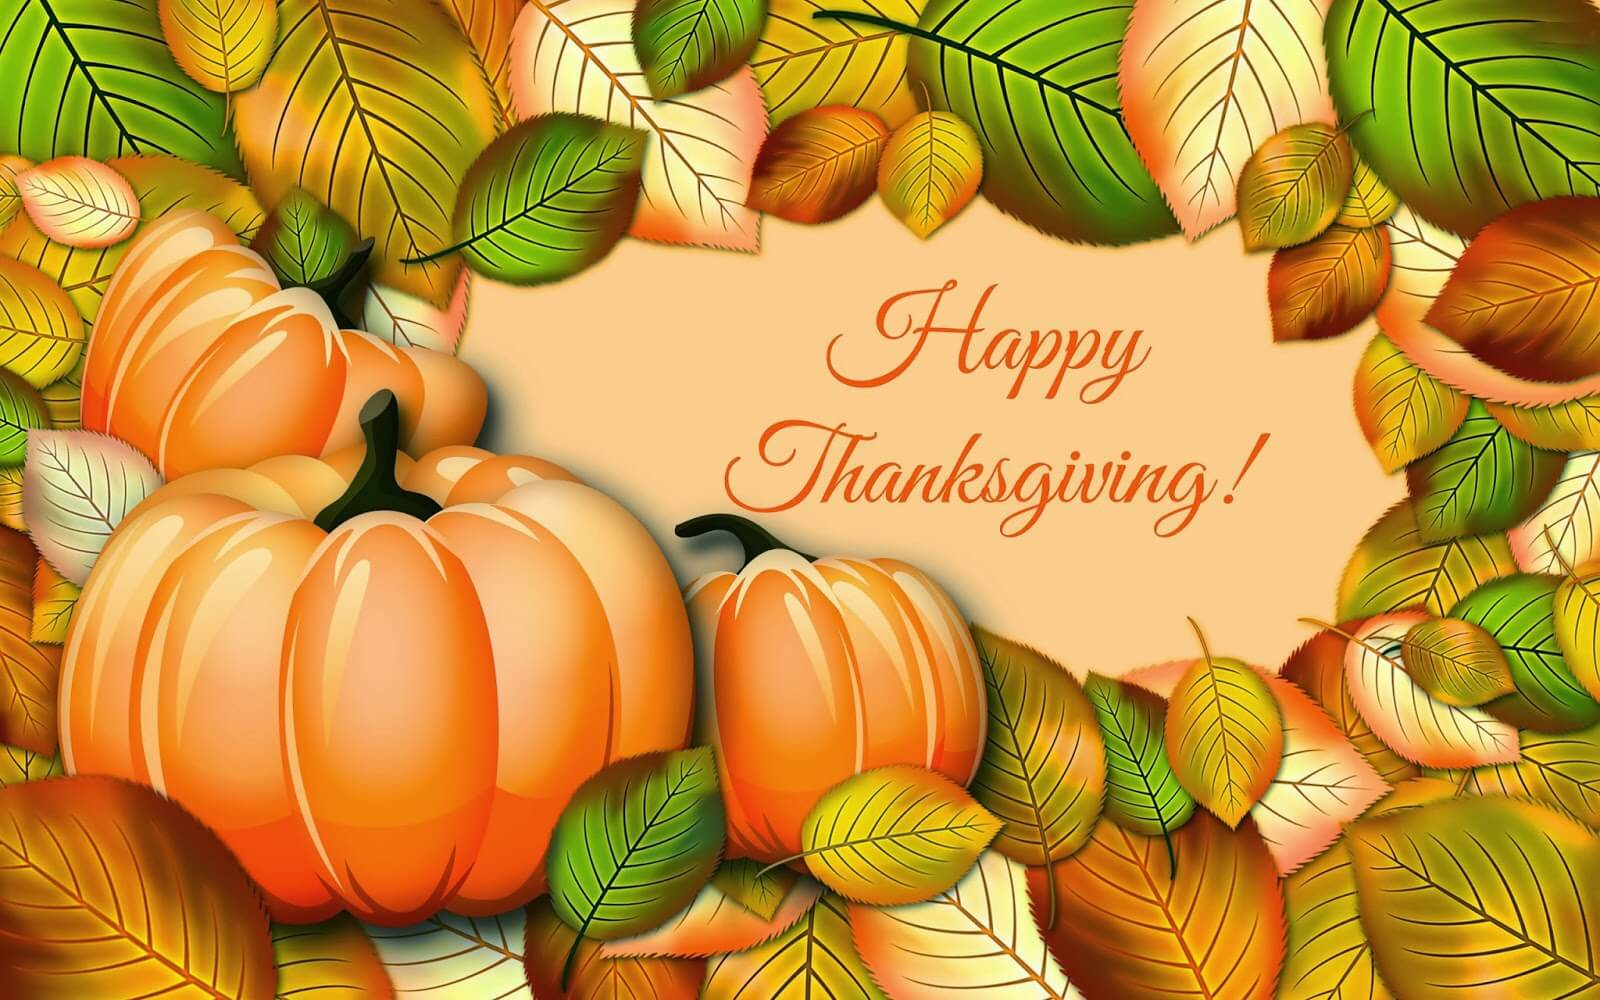 Inspirational Thanksgiving Quotes Wishes